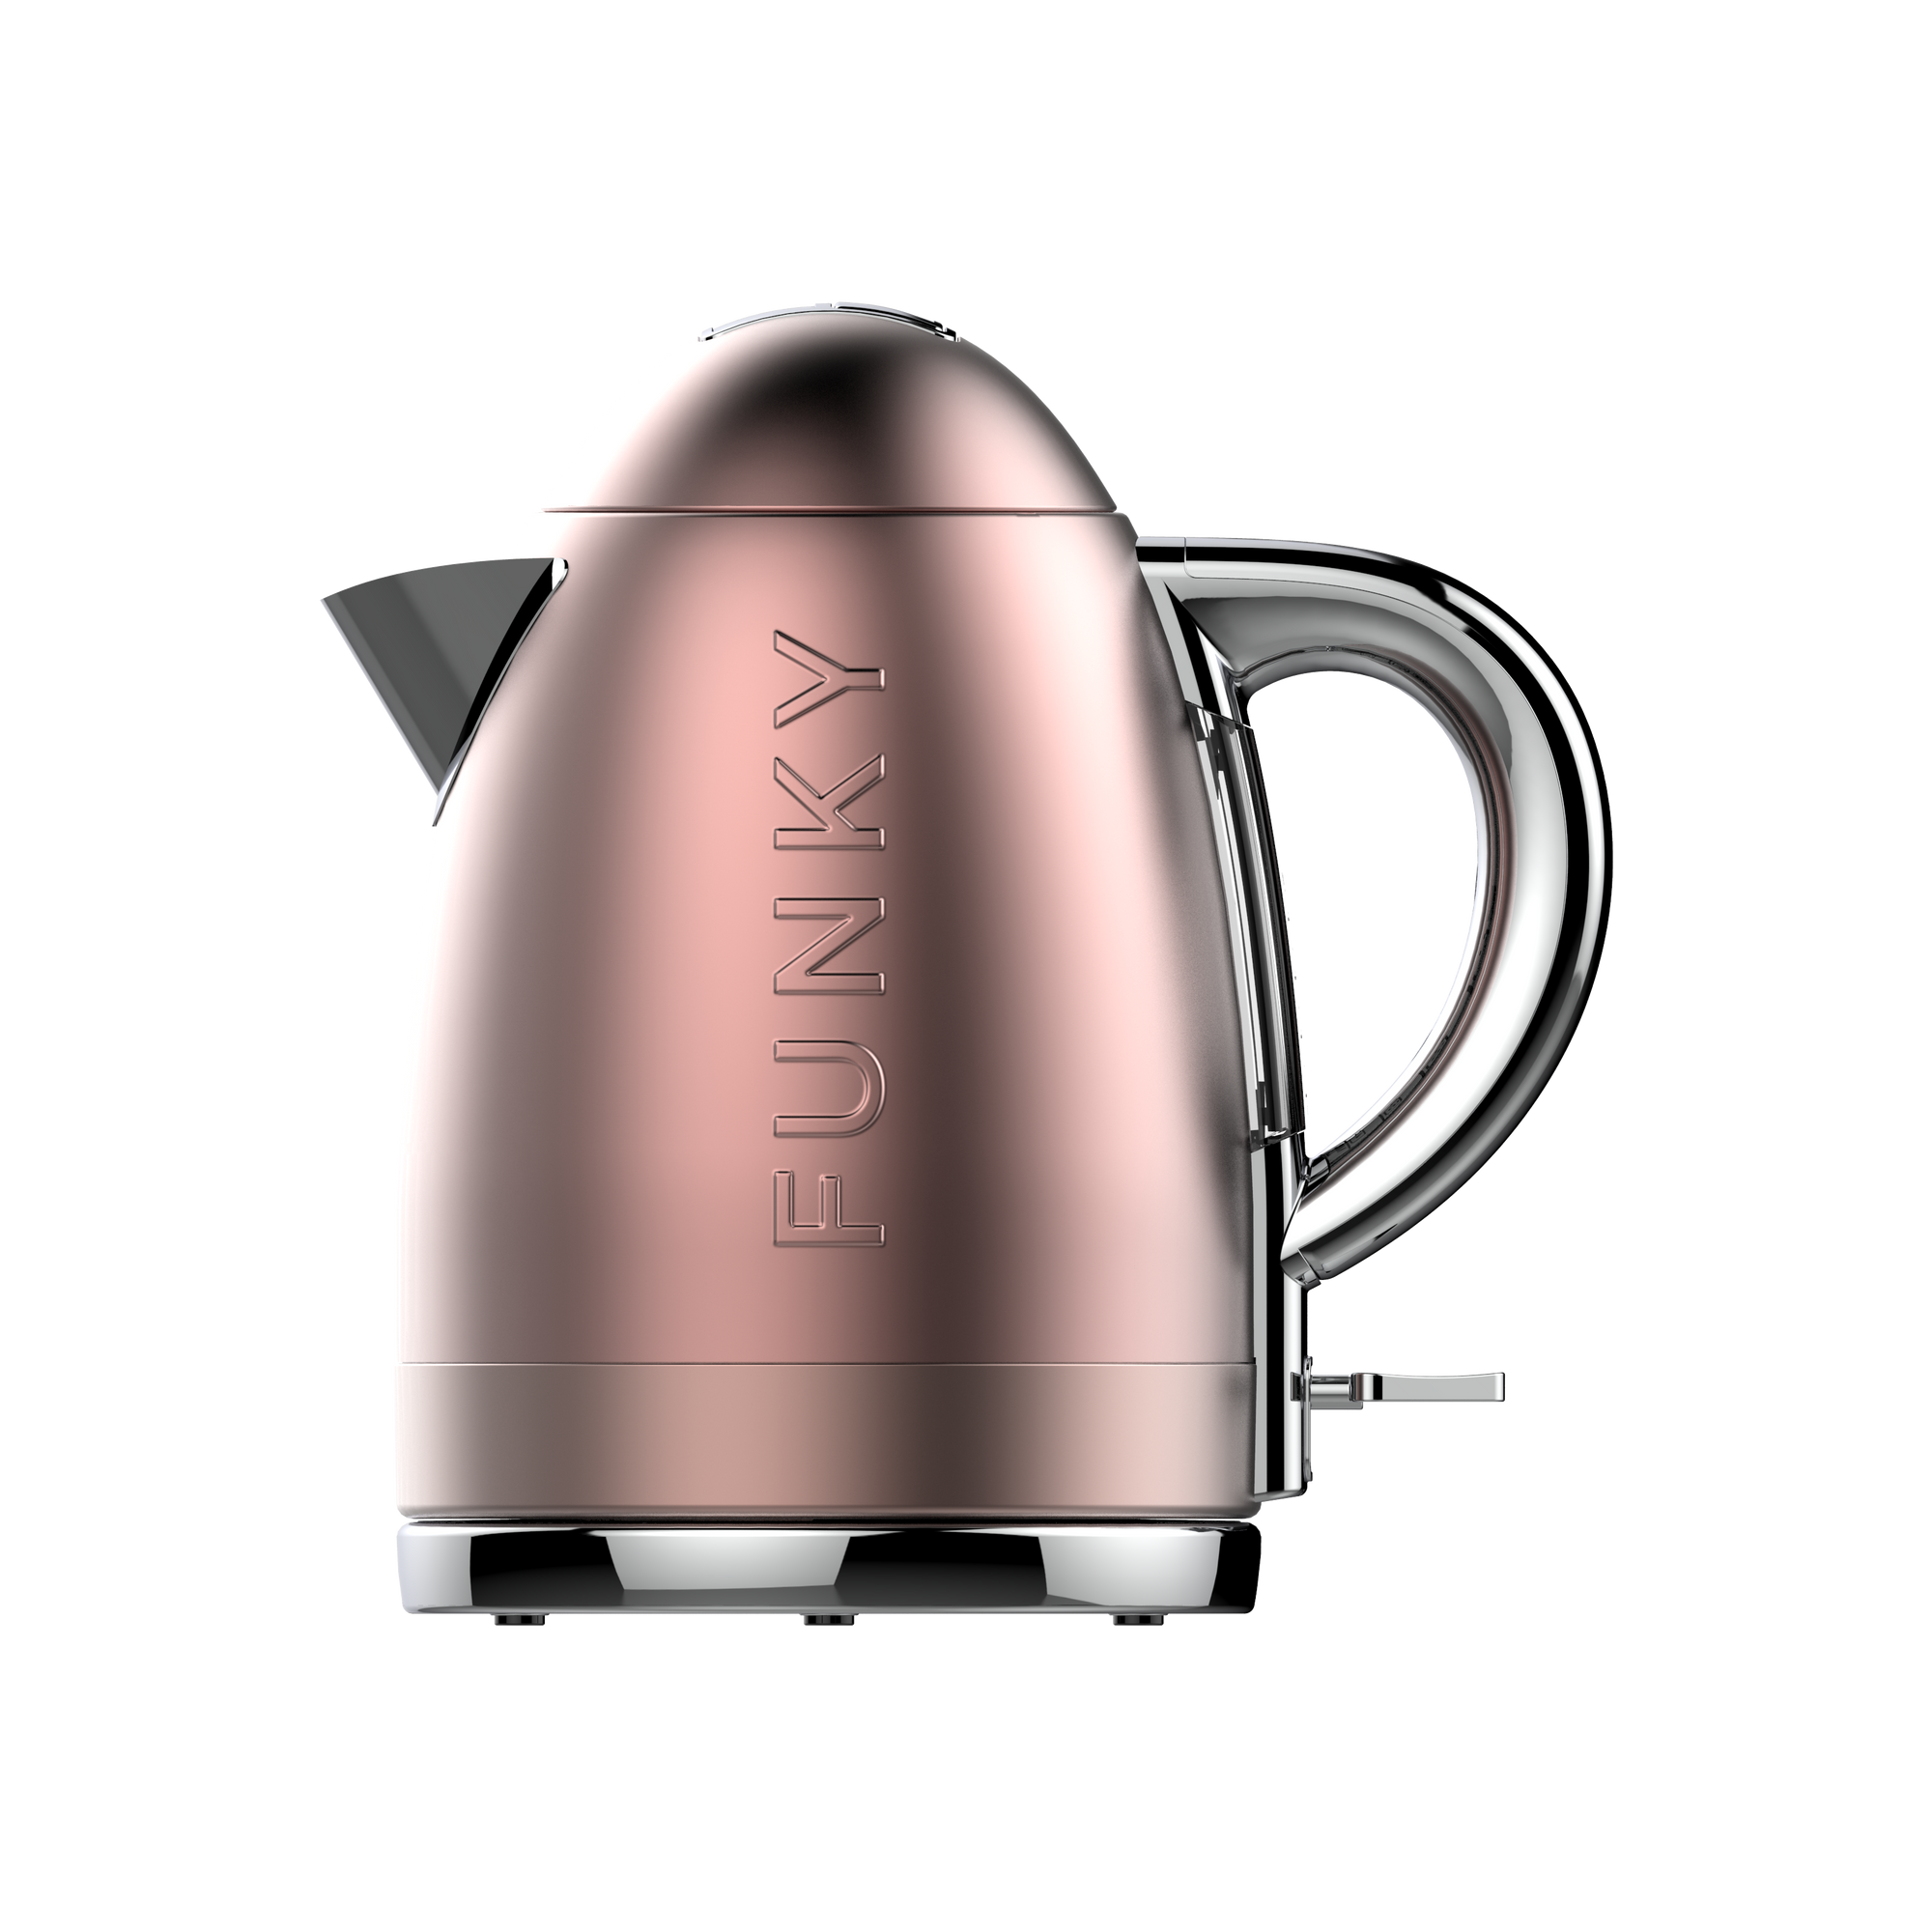 Rose Gold Funky Kettle Pre-Order Now For Delivery In January 2021